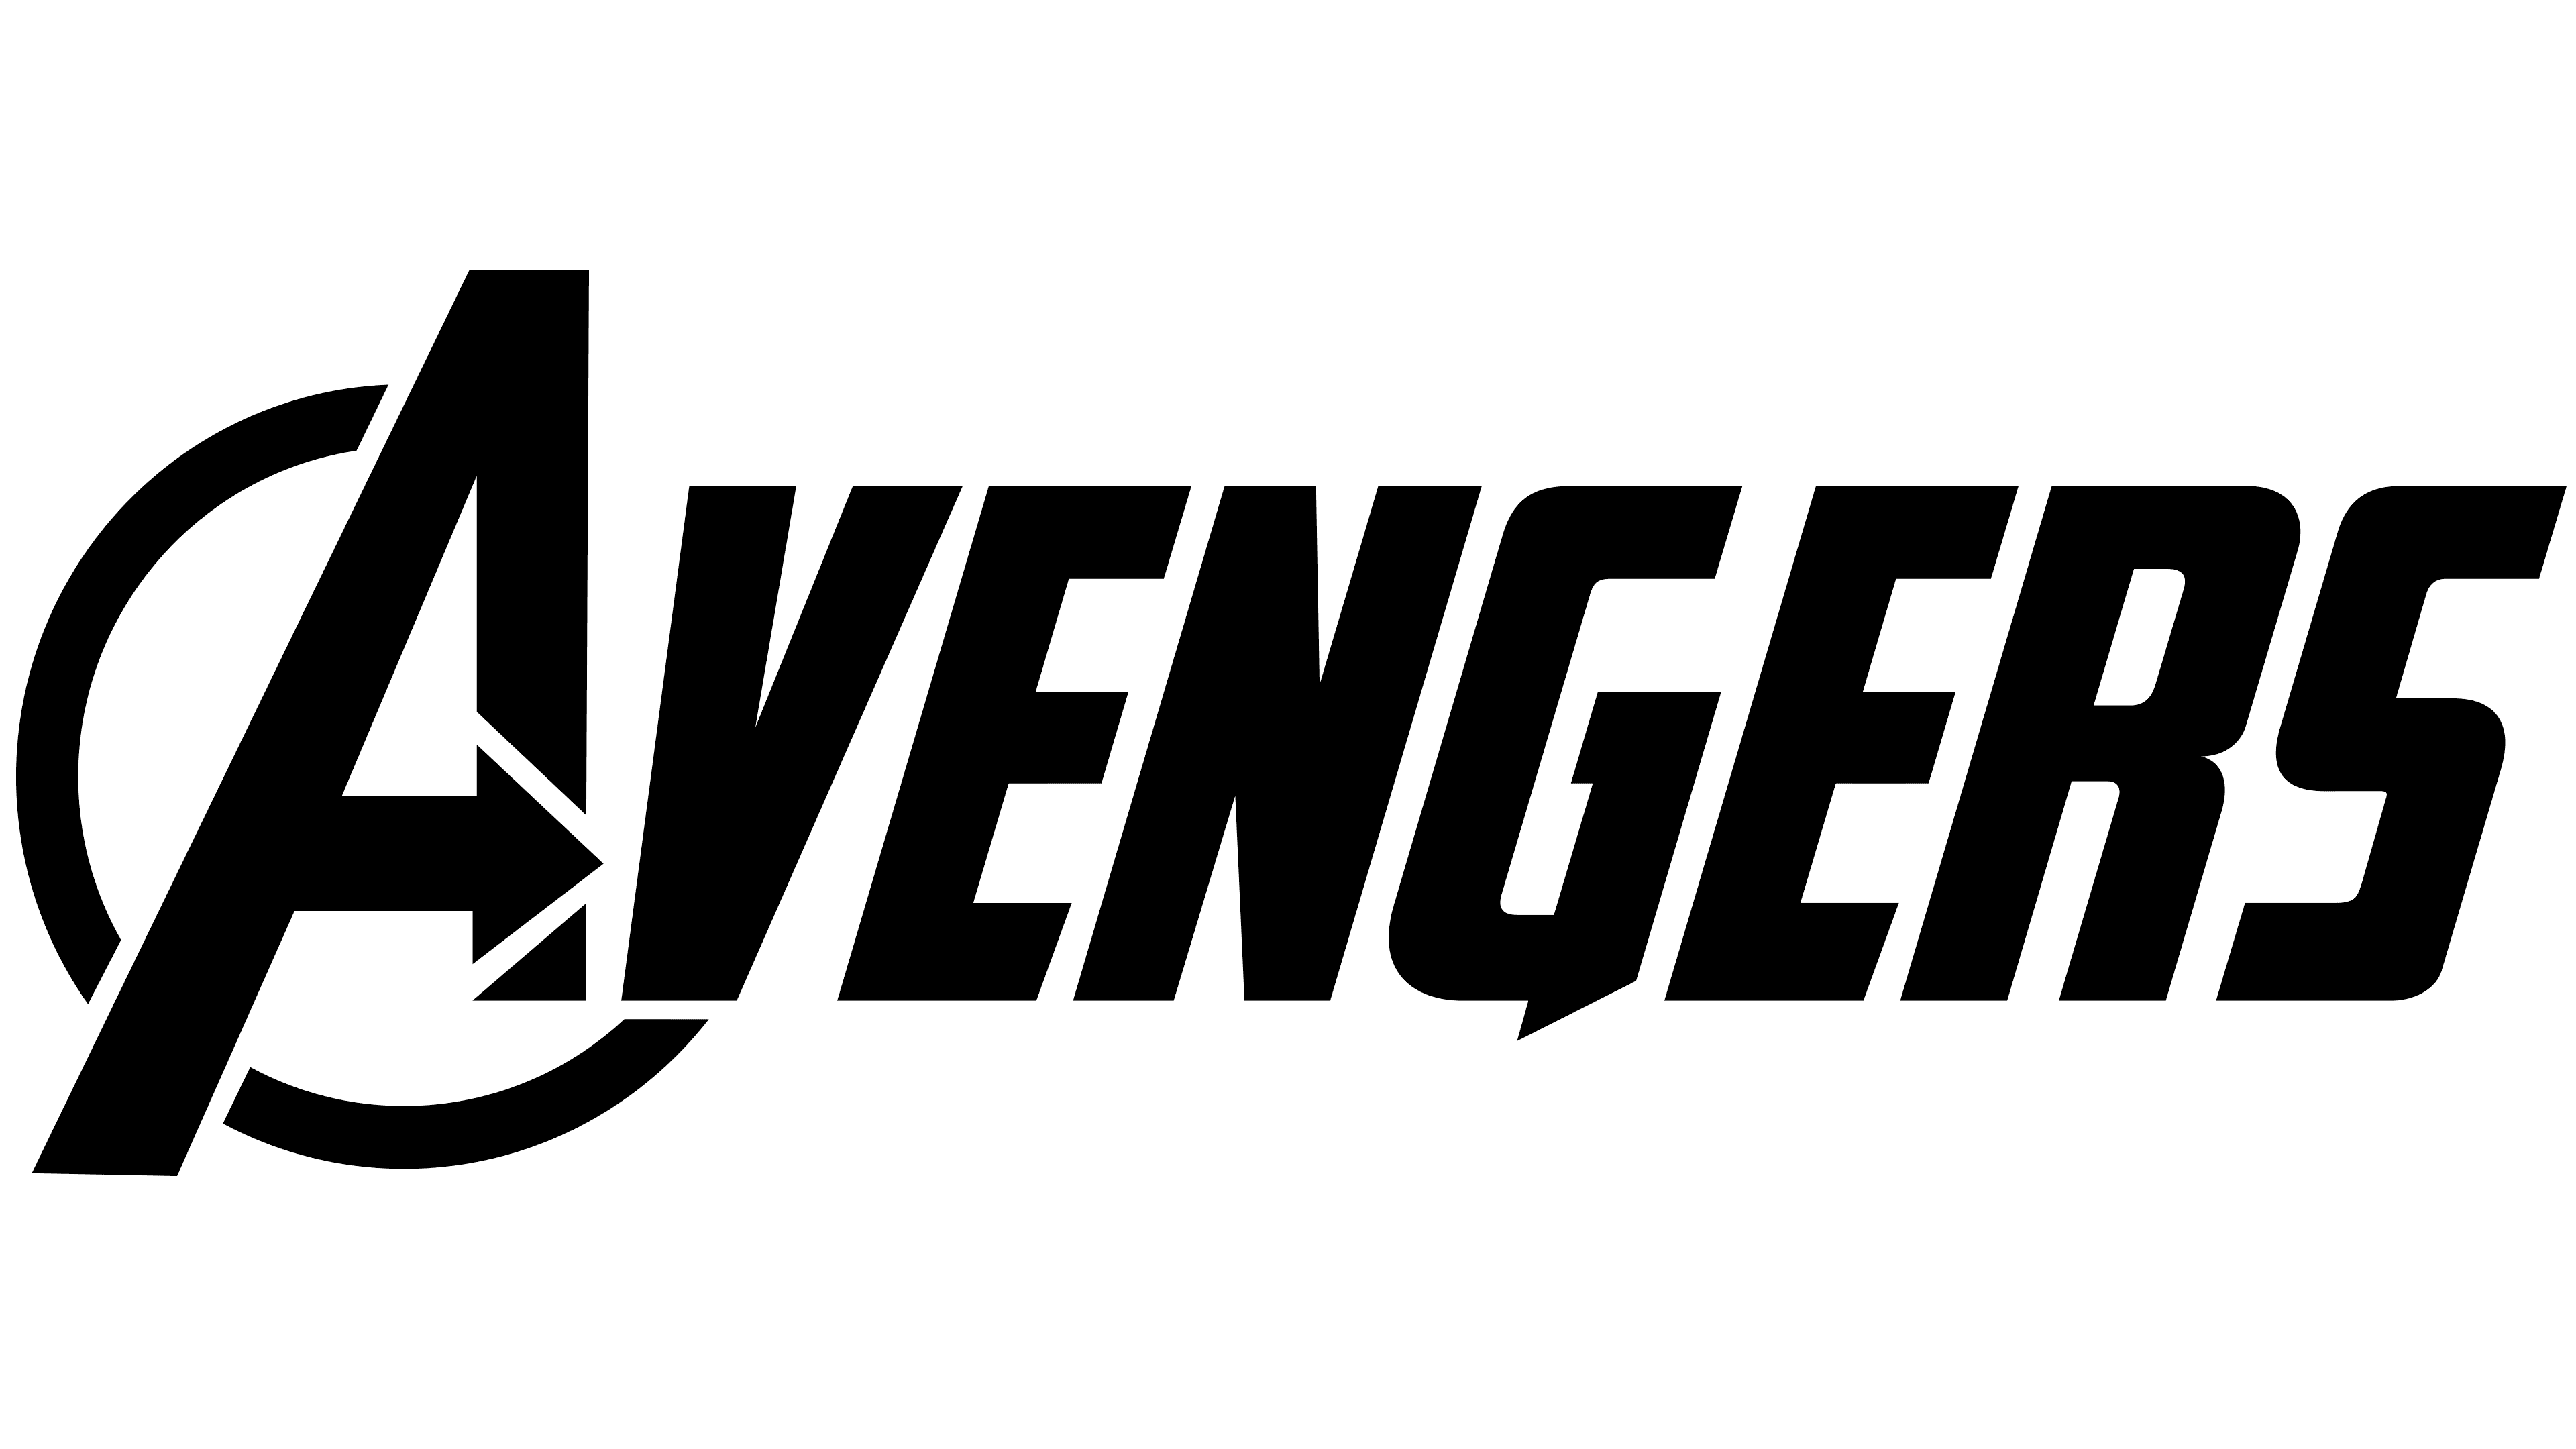 avengers logo history the most famous brands and company logos in the world avengers logo history the most famous